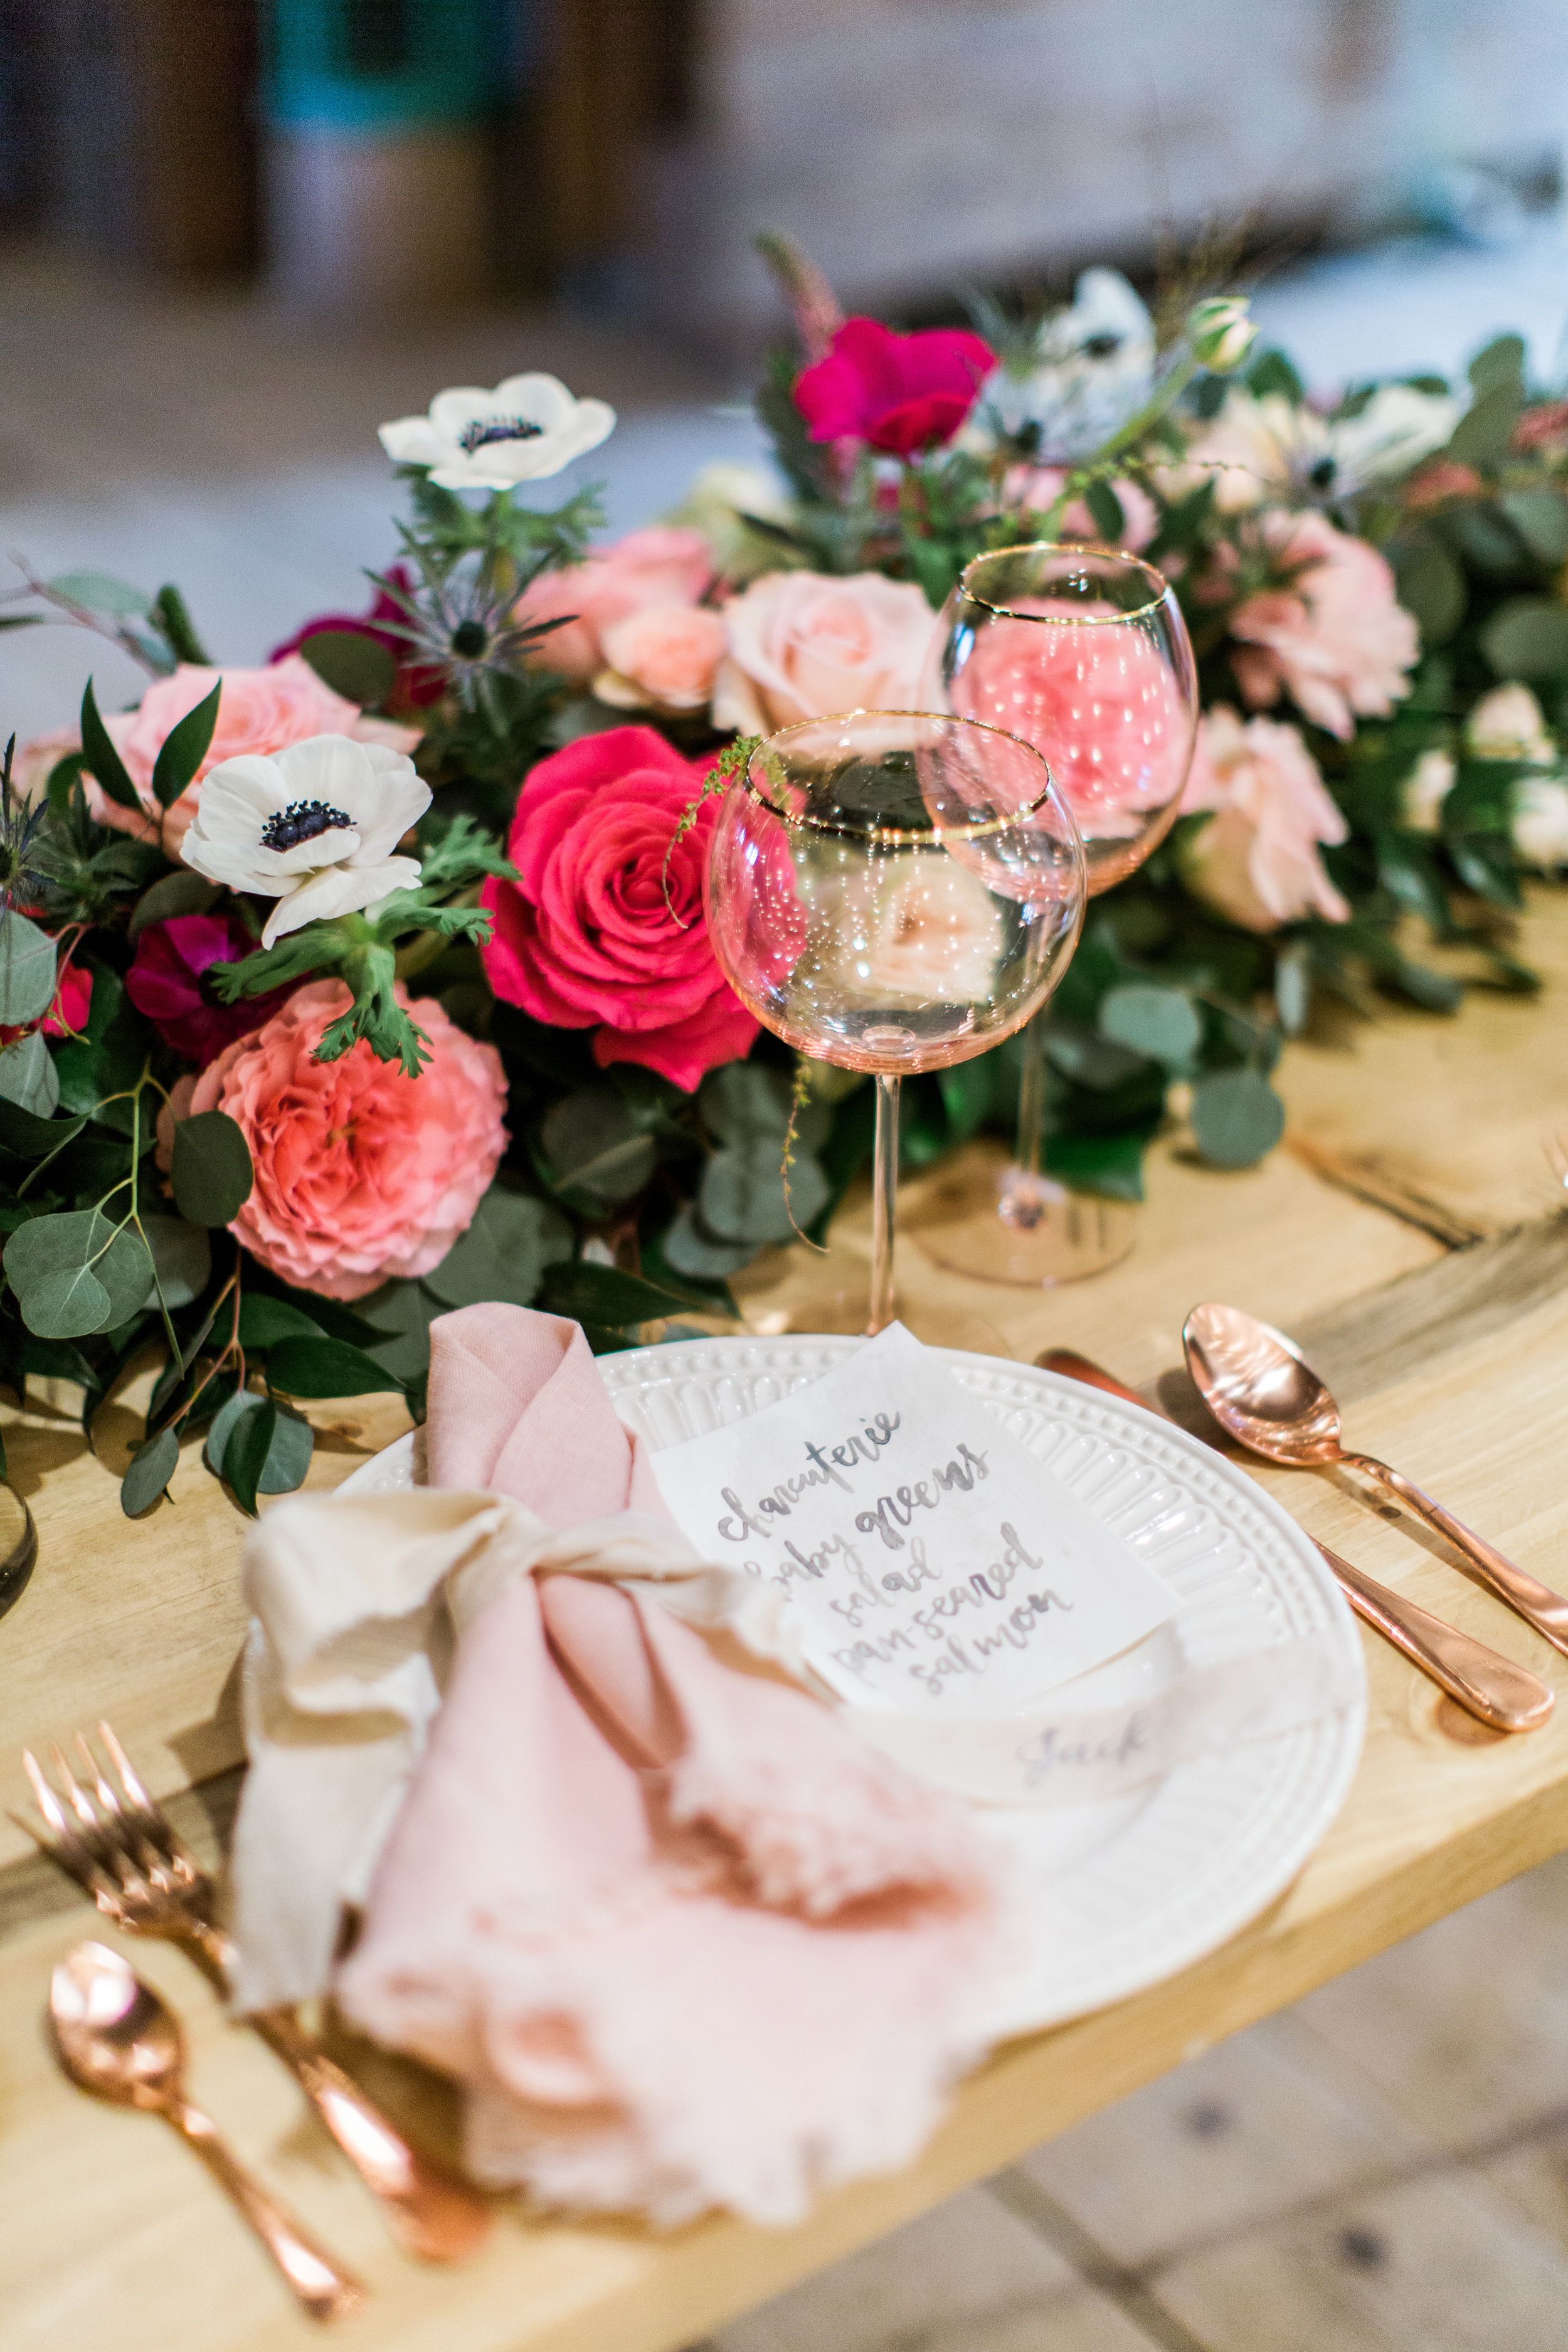 menu + ribbon calligraphy: hello, bird. // florals: ilonka florals // furniture: maggpie vintage rentals // photo by emily wren photography